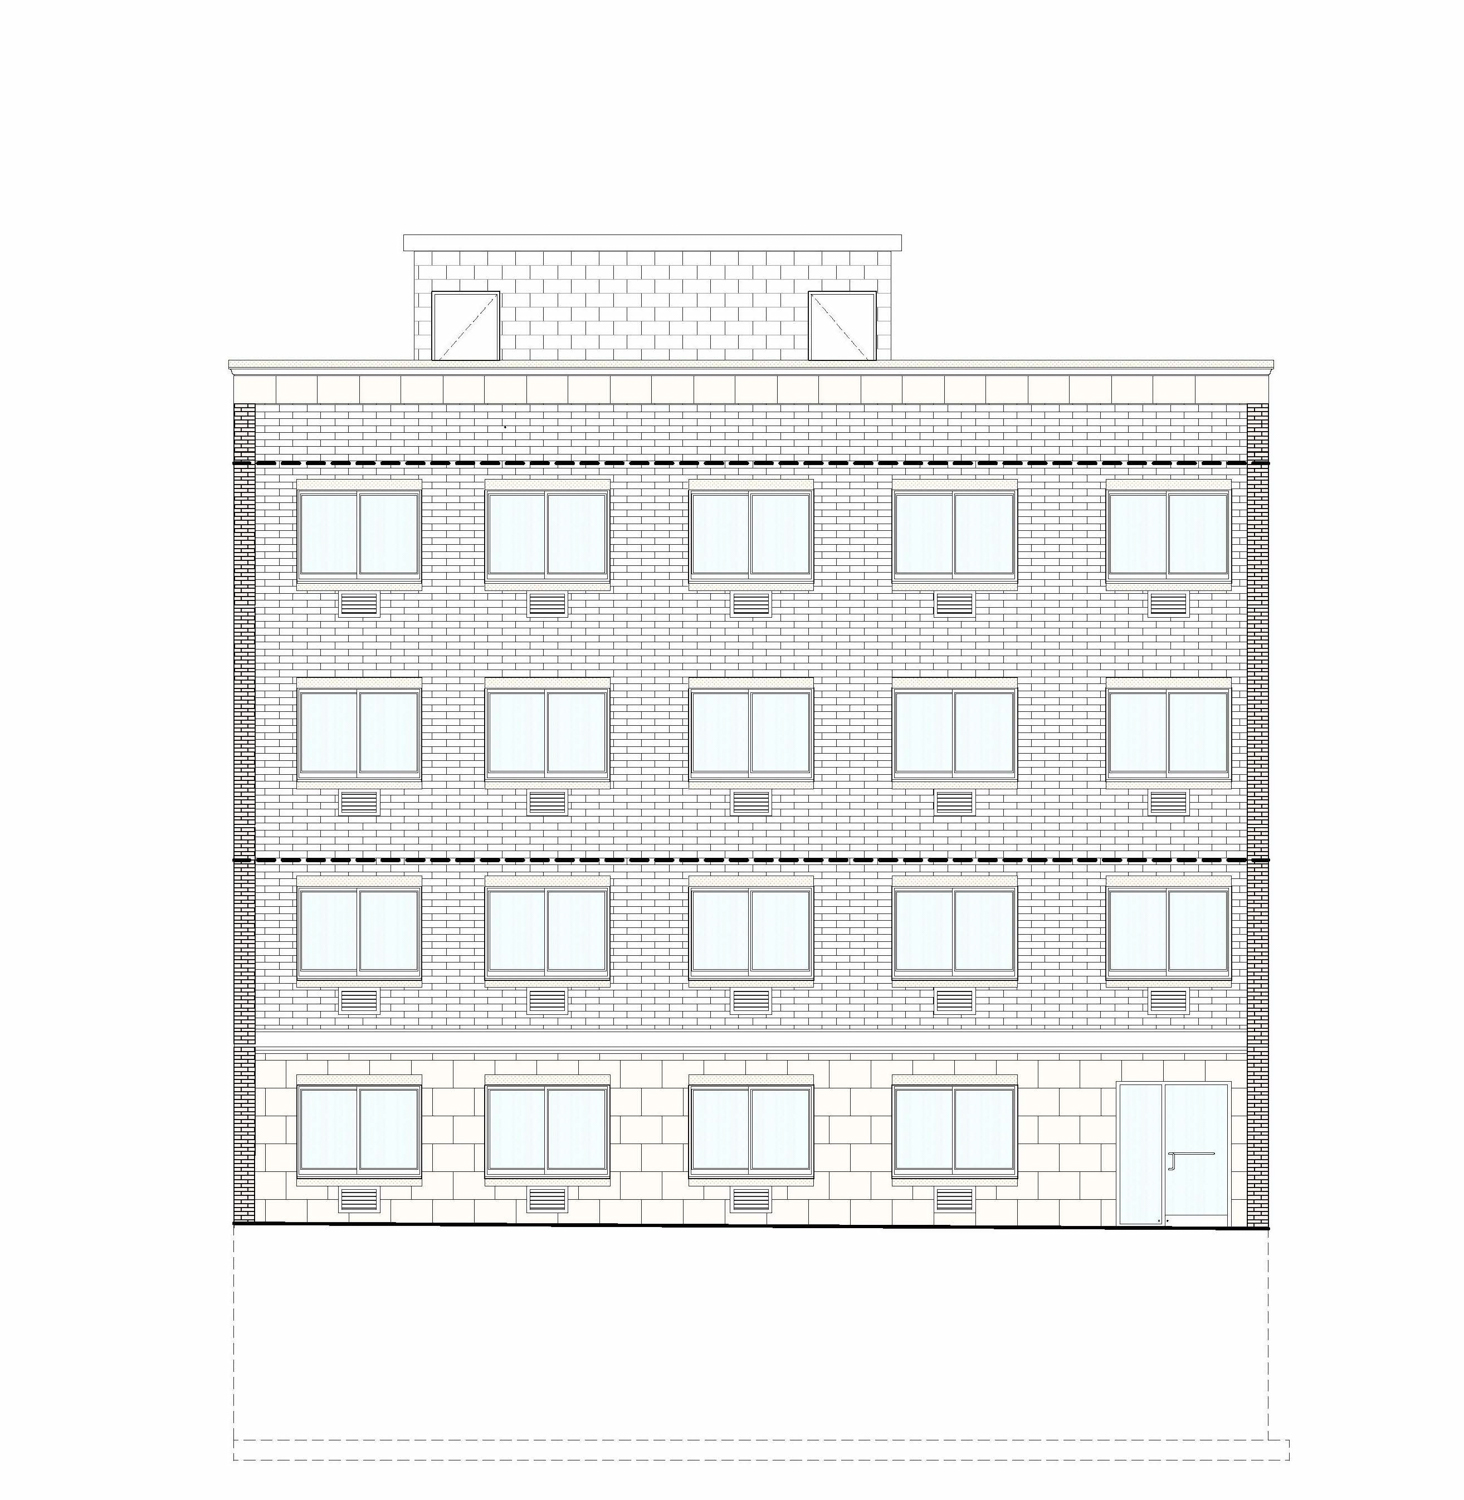 909 East 229th Street, elevation by Badaly Architects